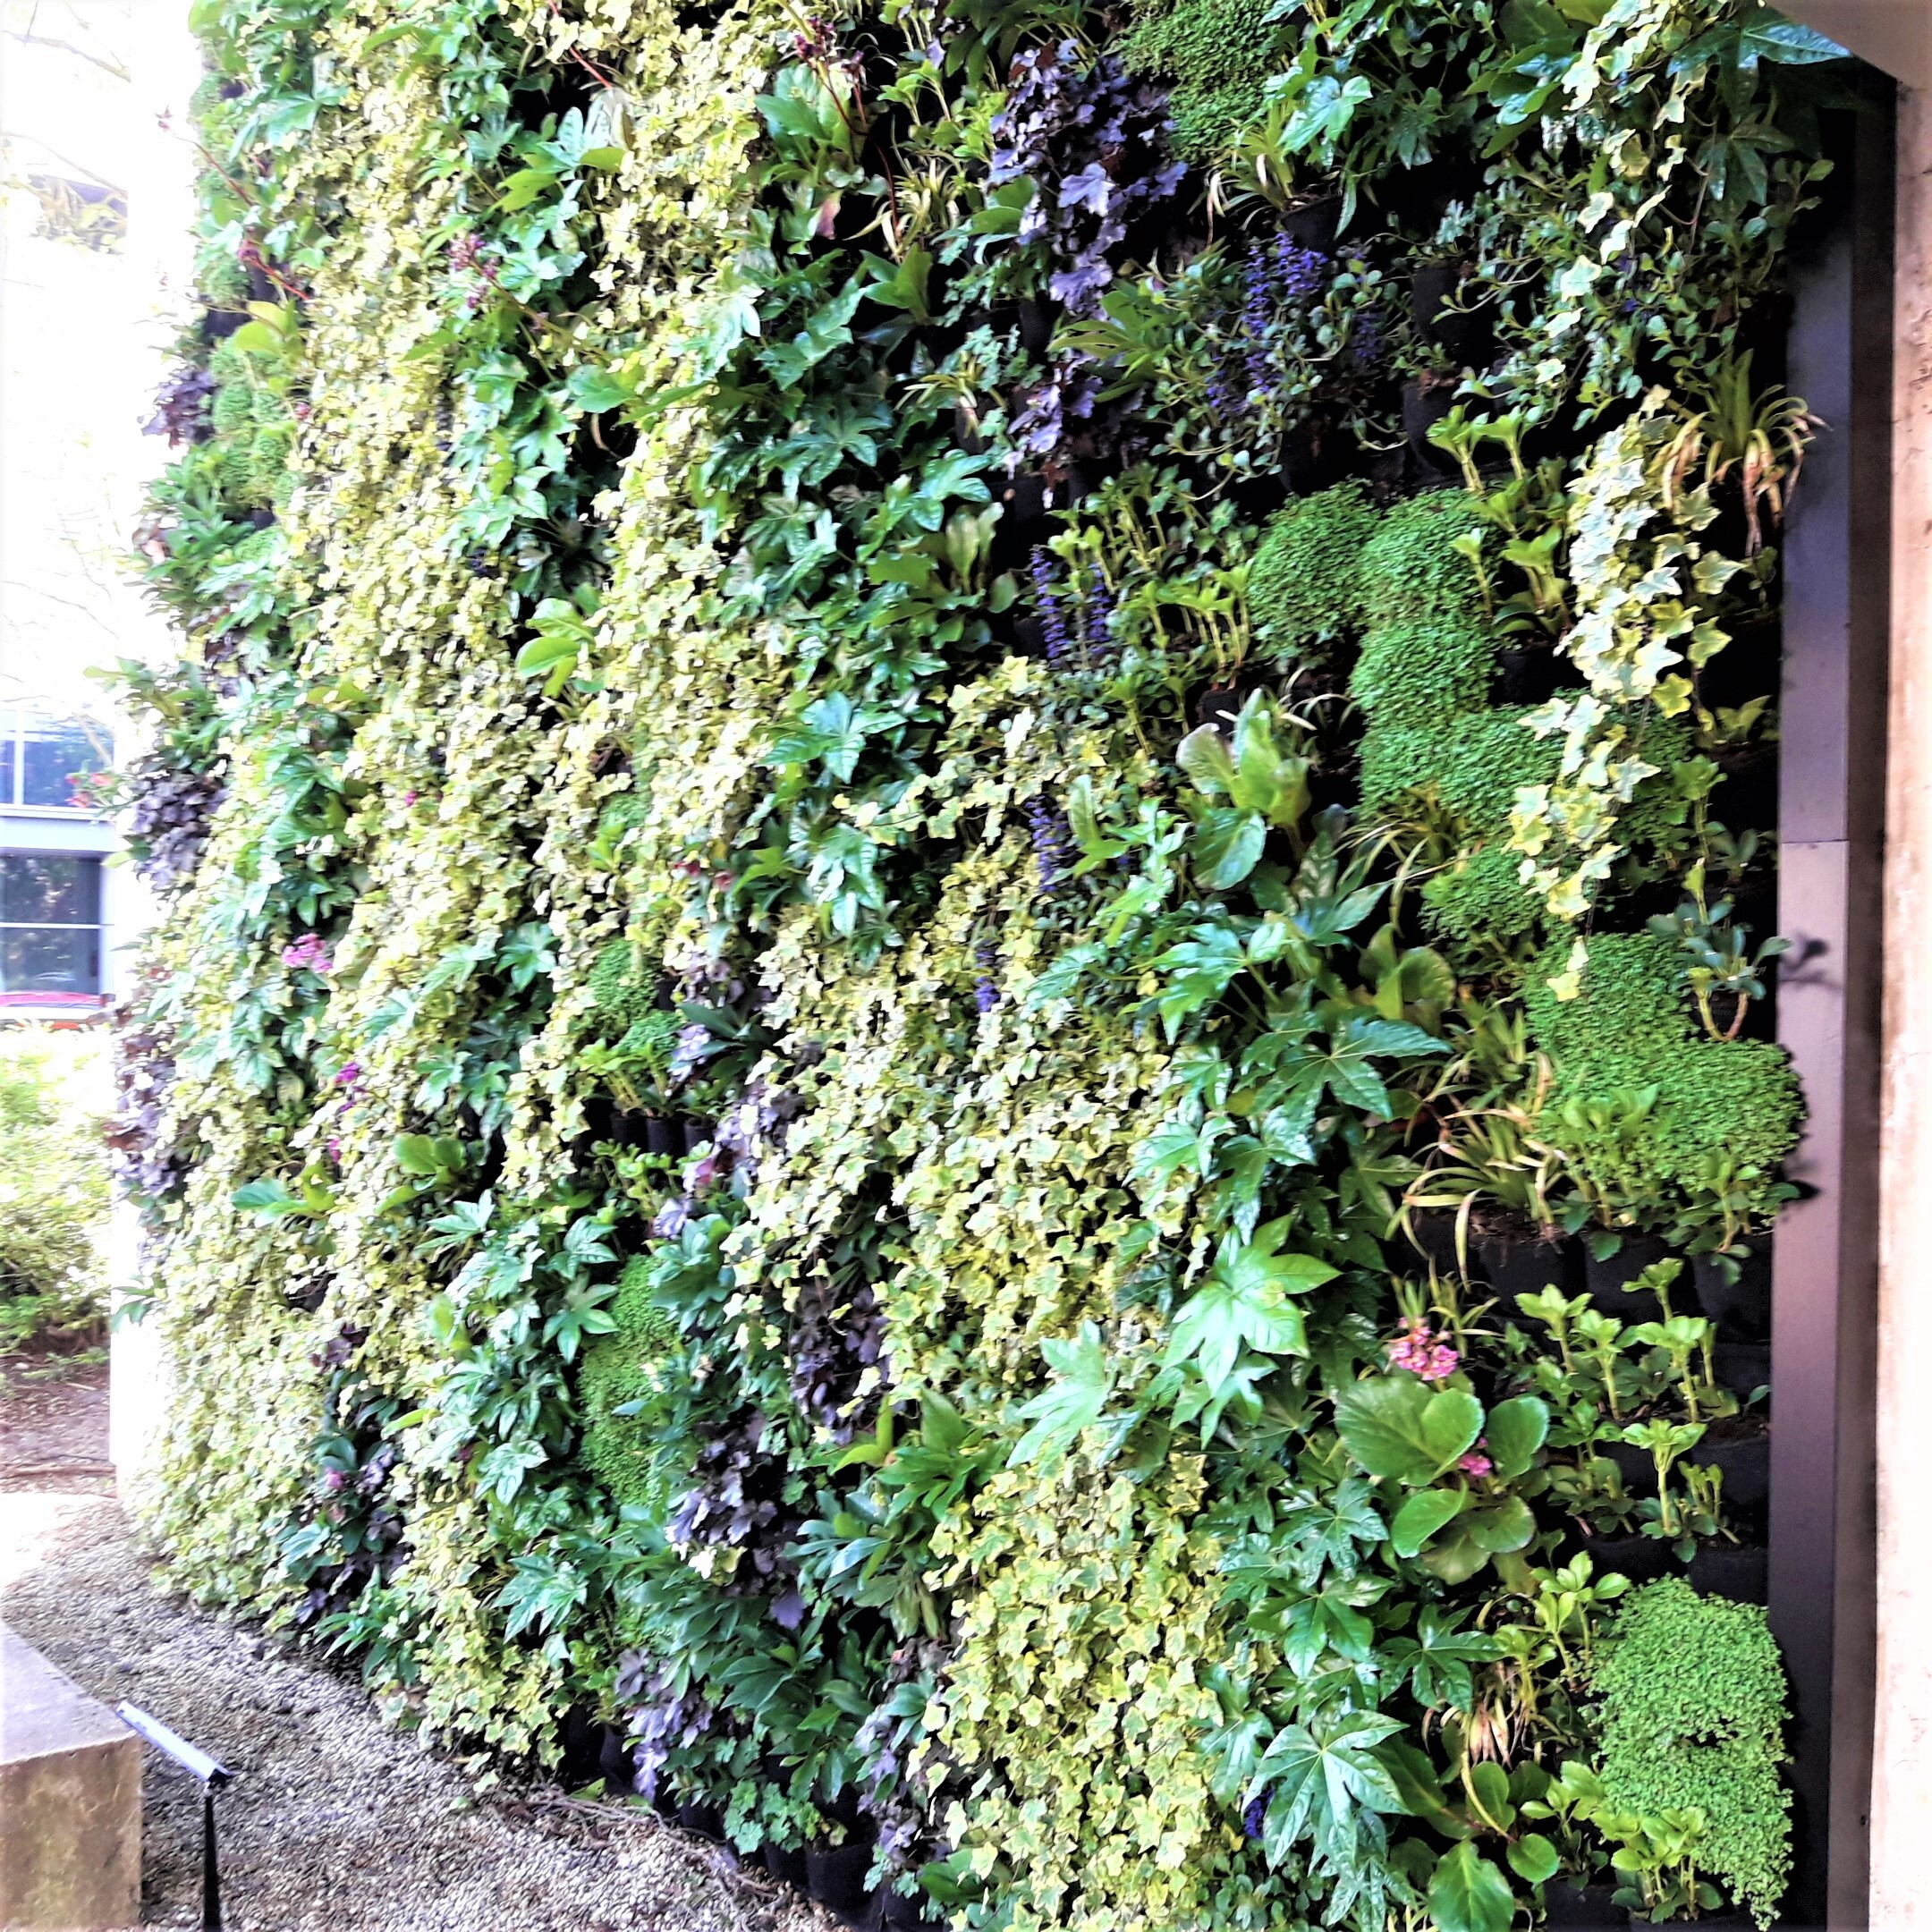 Living Wall Oxford Science Park